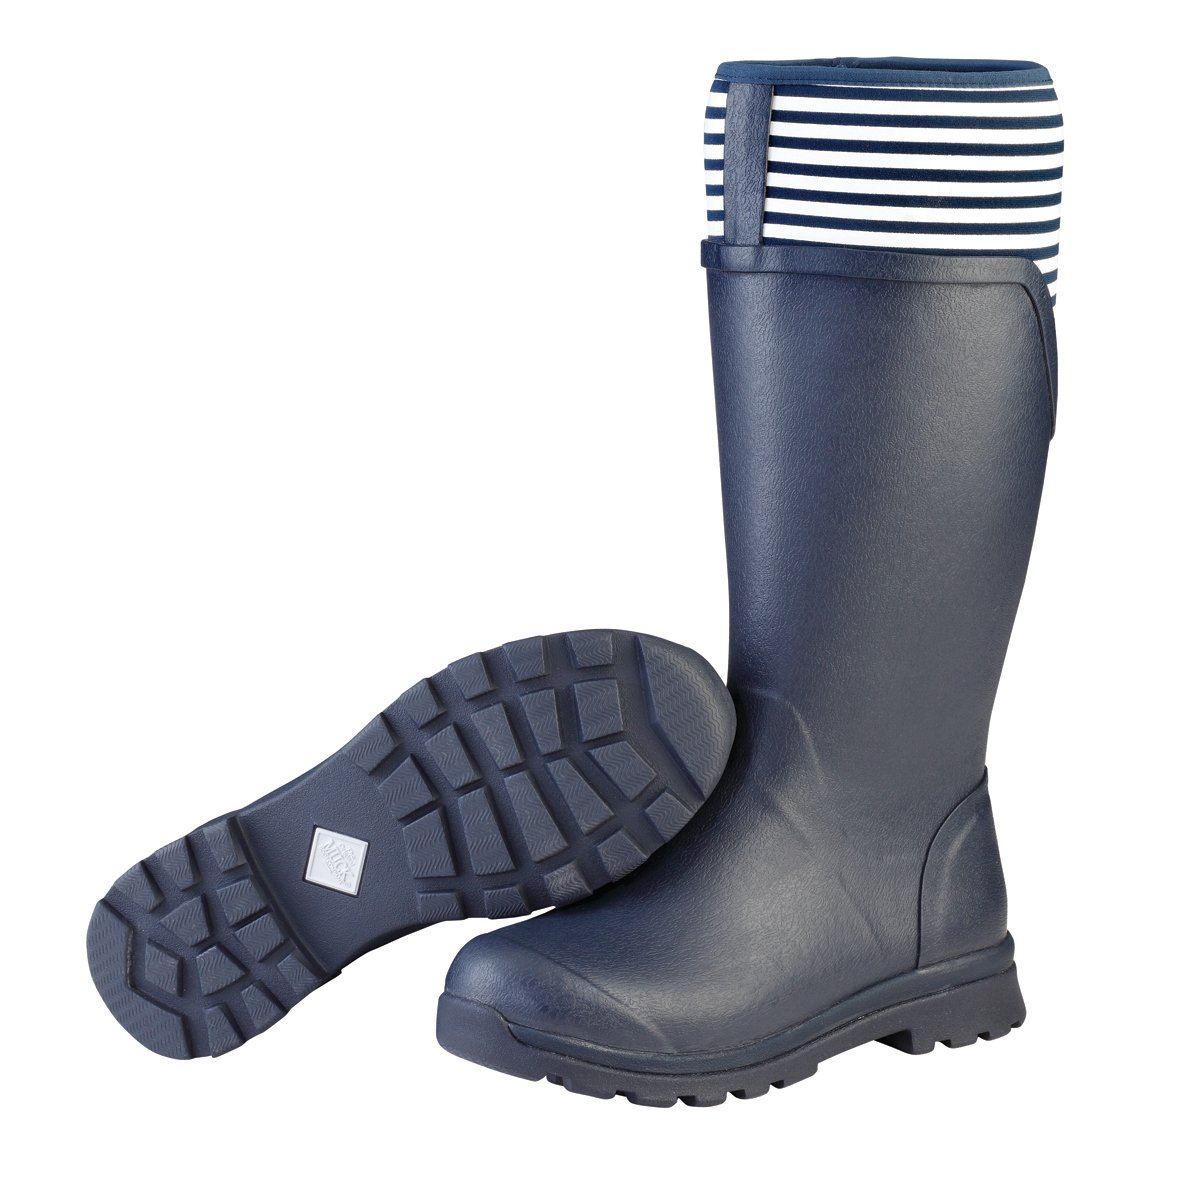 Muck Boot Women's Cambridge Tall Snow Boot, Navy With White Stripe, 7 B US